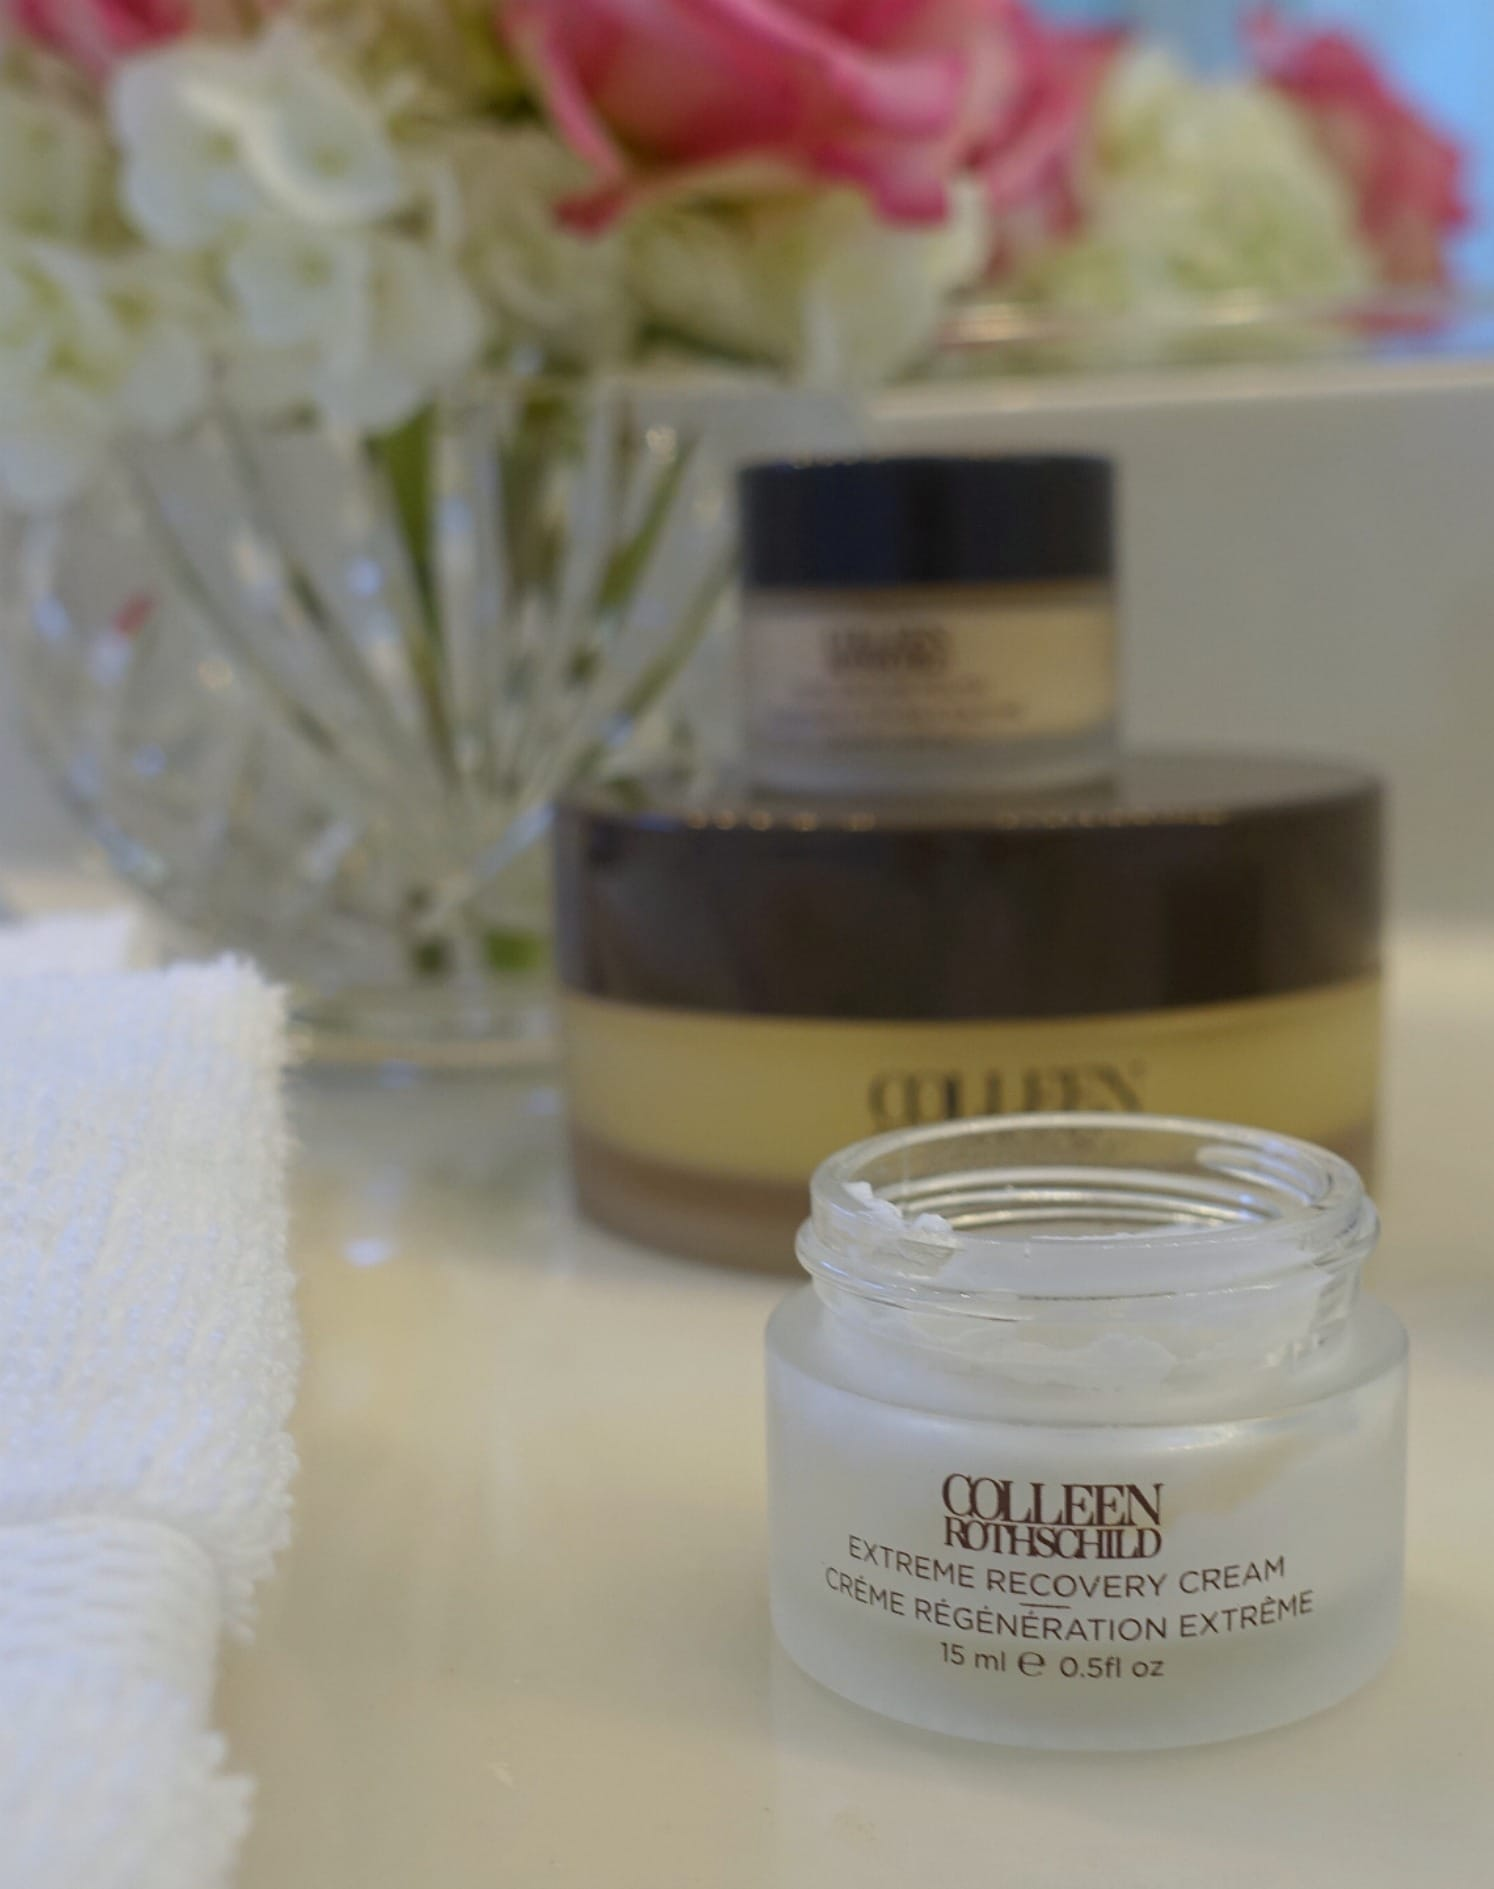 Colleen Rothschild skin care on A Well Styled Life